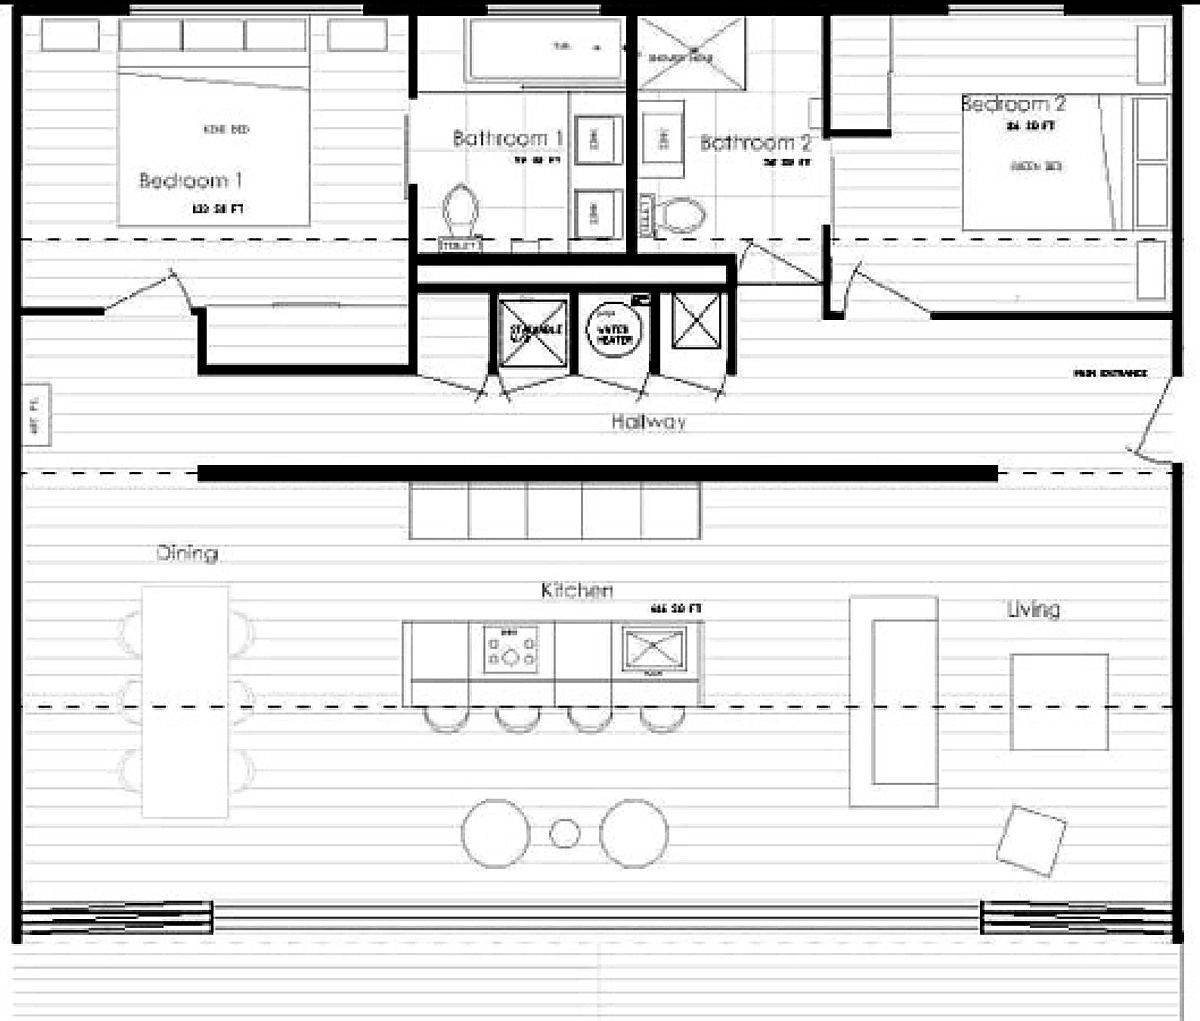 Container home floor plan iq hause christopher bord for Cargo home designs